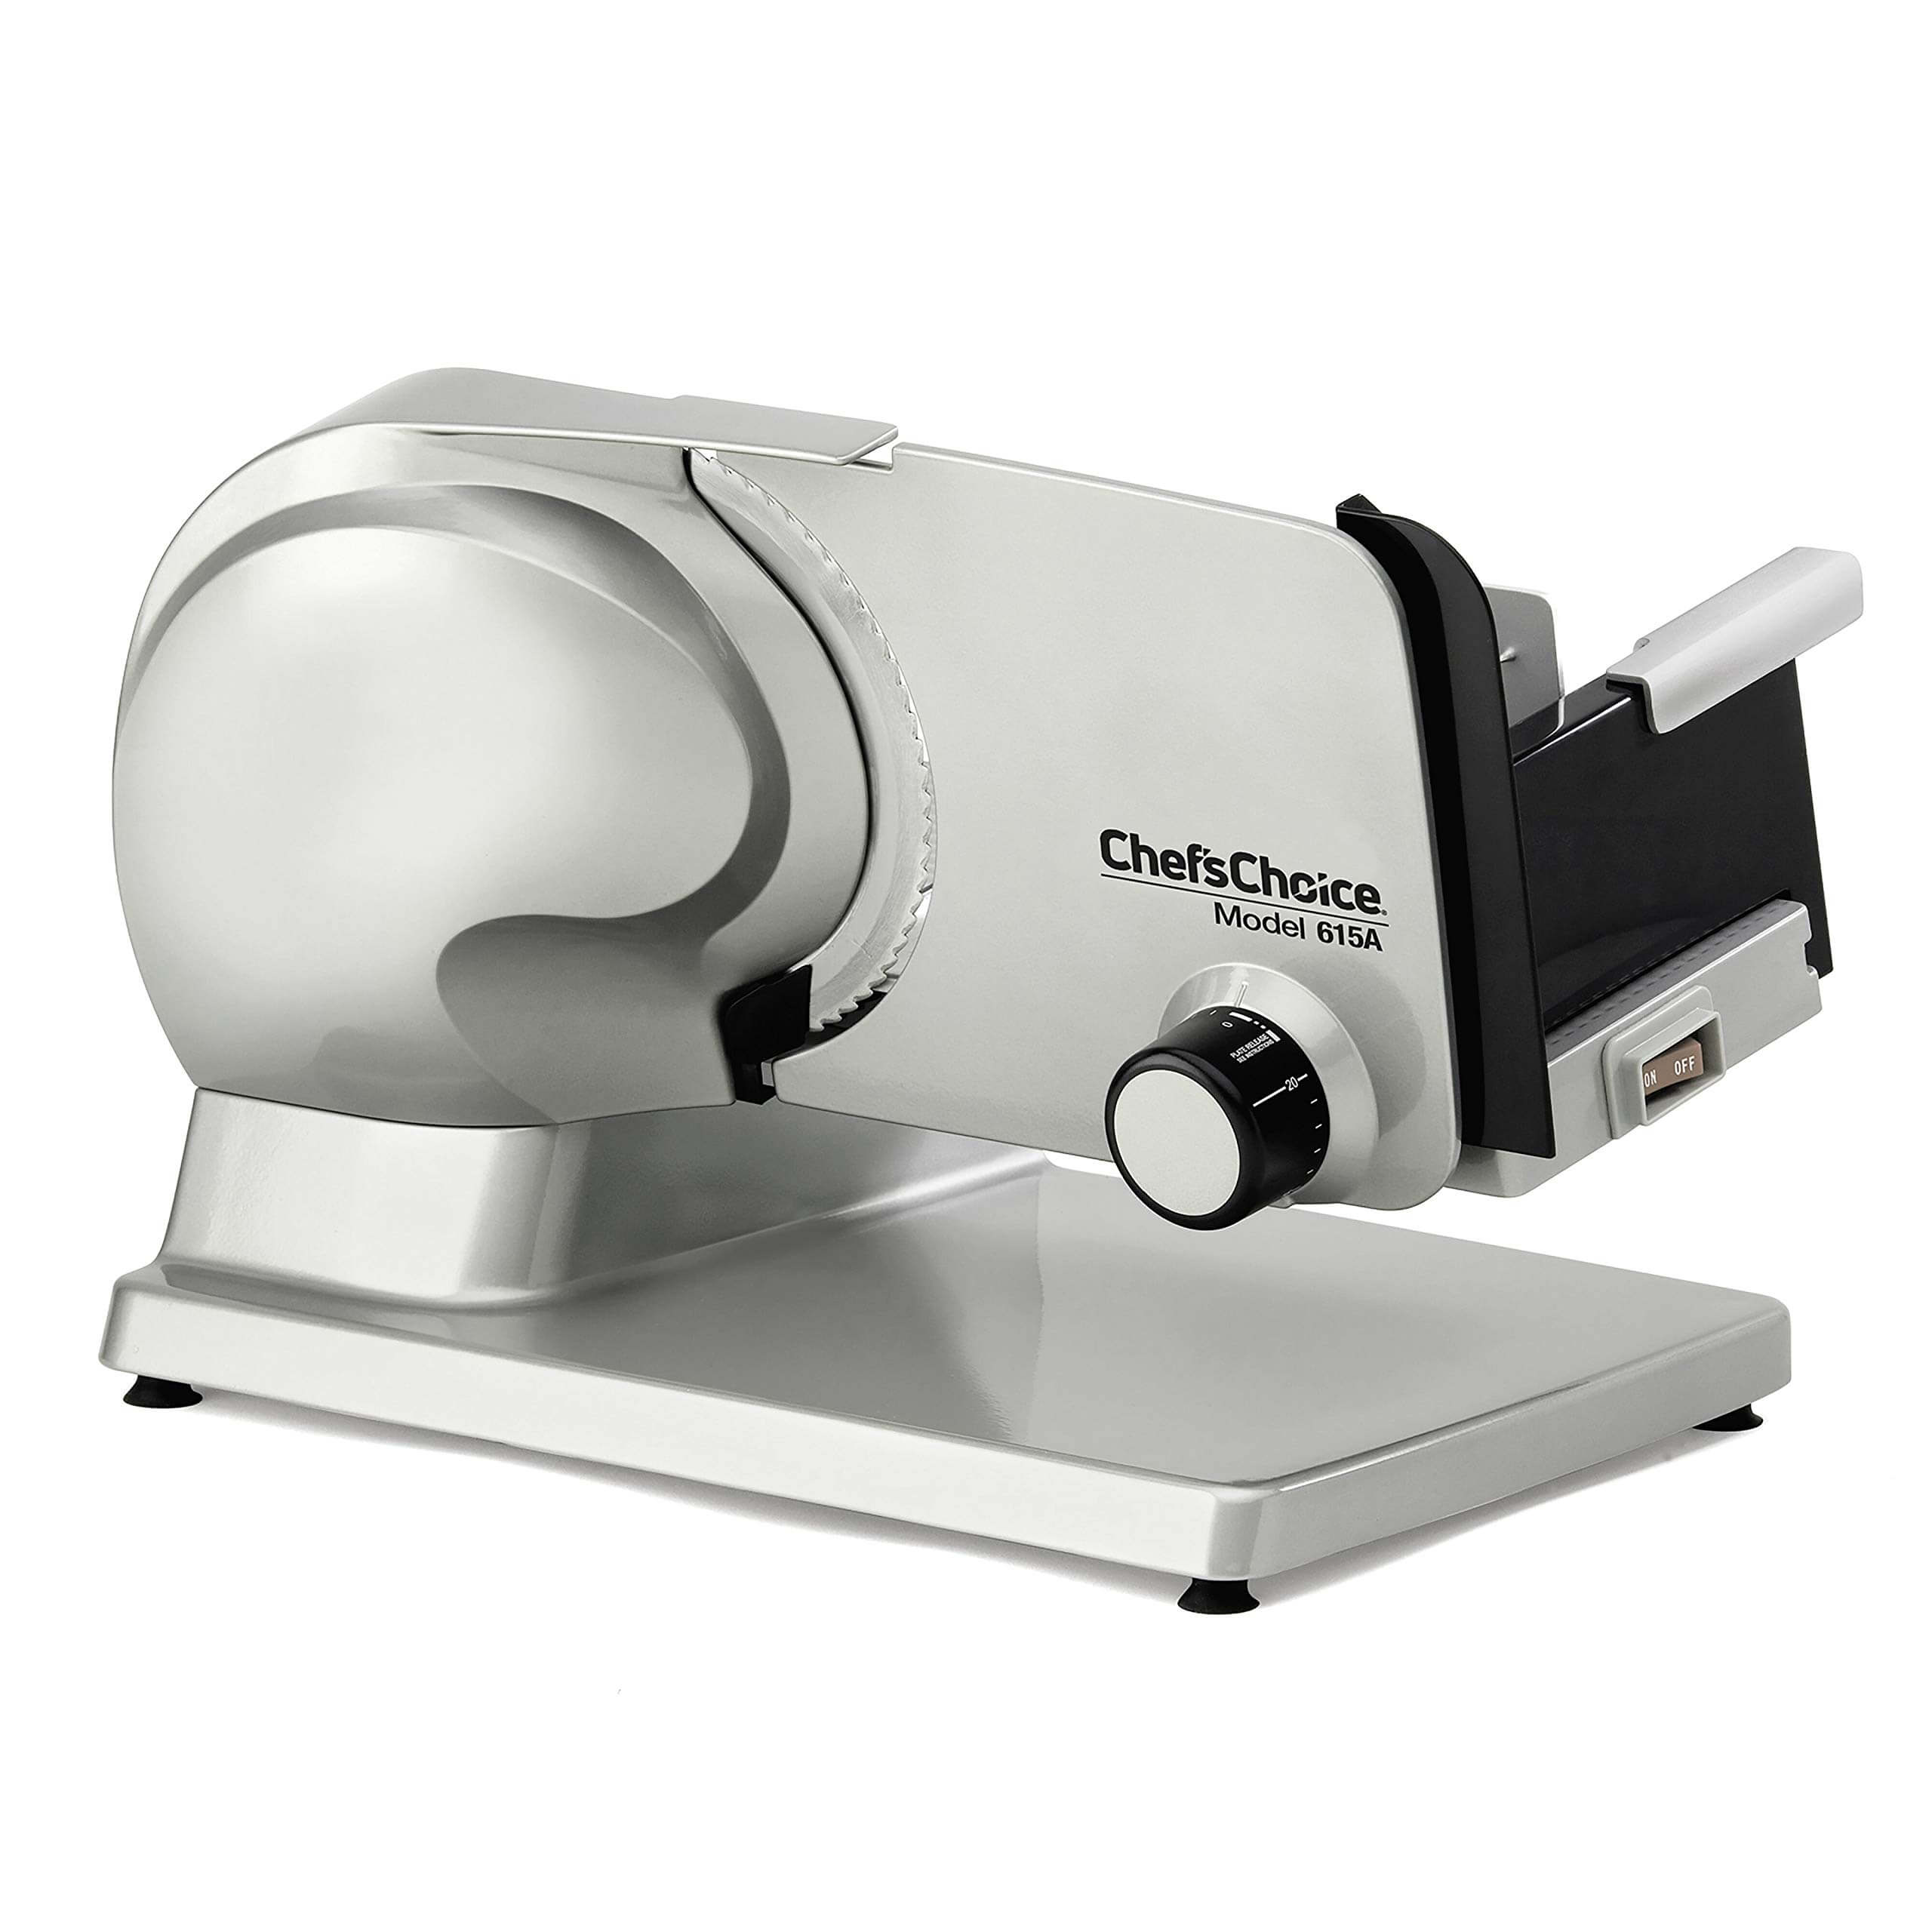 chef'schoice 615a best electric meat slicer